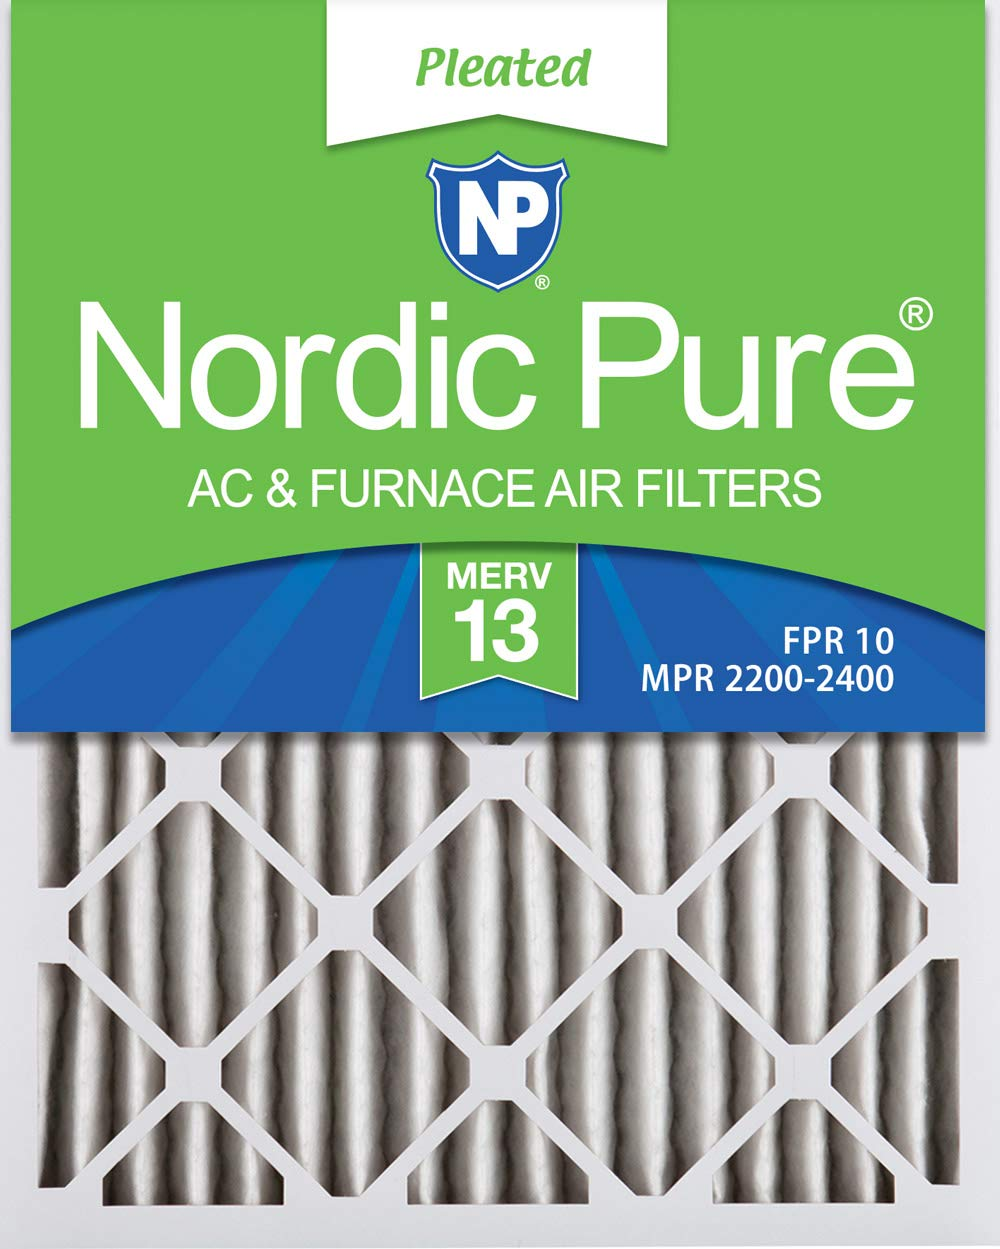 Nordic Pure 16x24x2 MERV 13 Pleated AC Furnace Air Filters 3 Pack, 3 PACK, 3 PACK